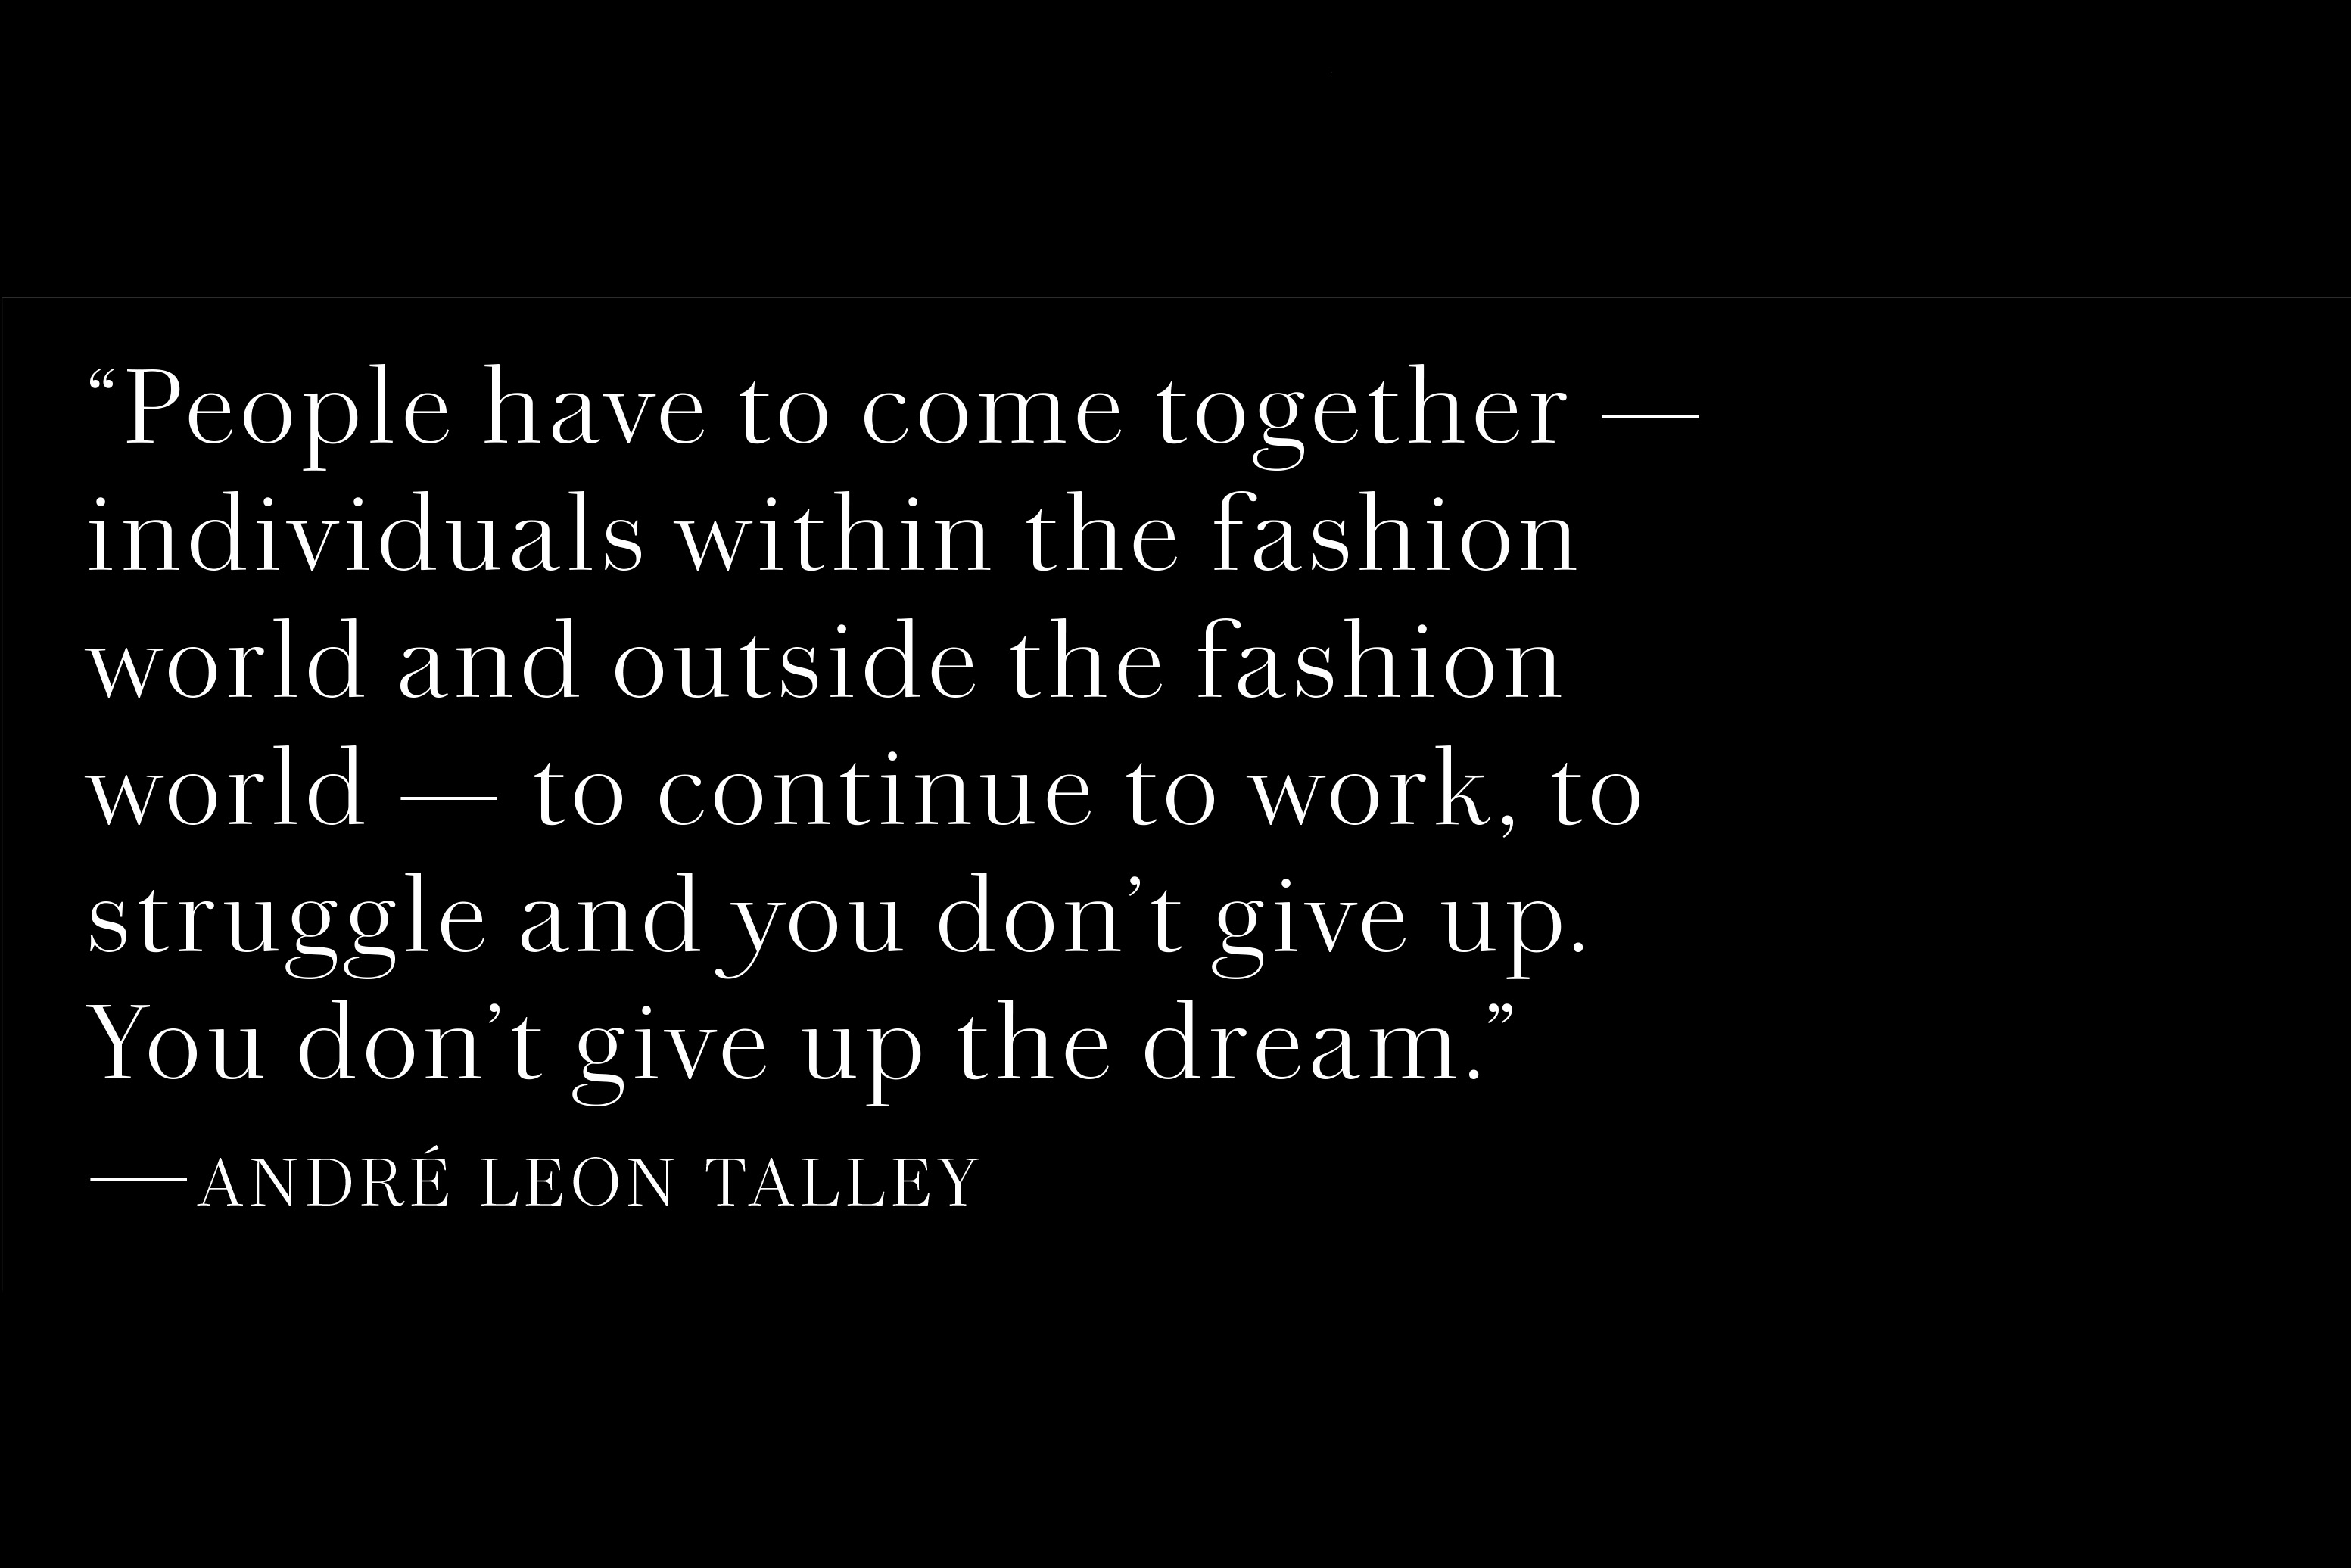 Voices of Fashion's Black Creatives on the Work to Be Done